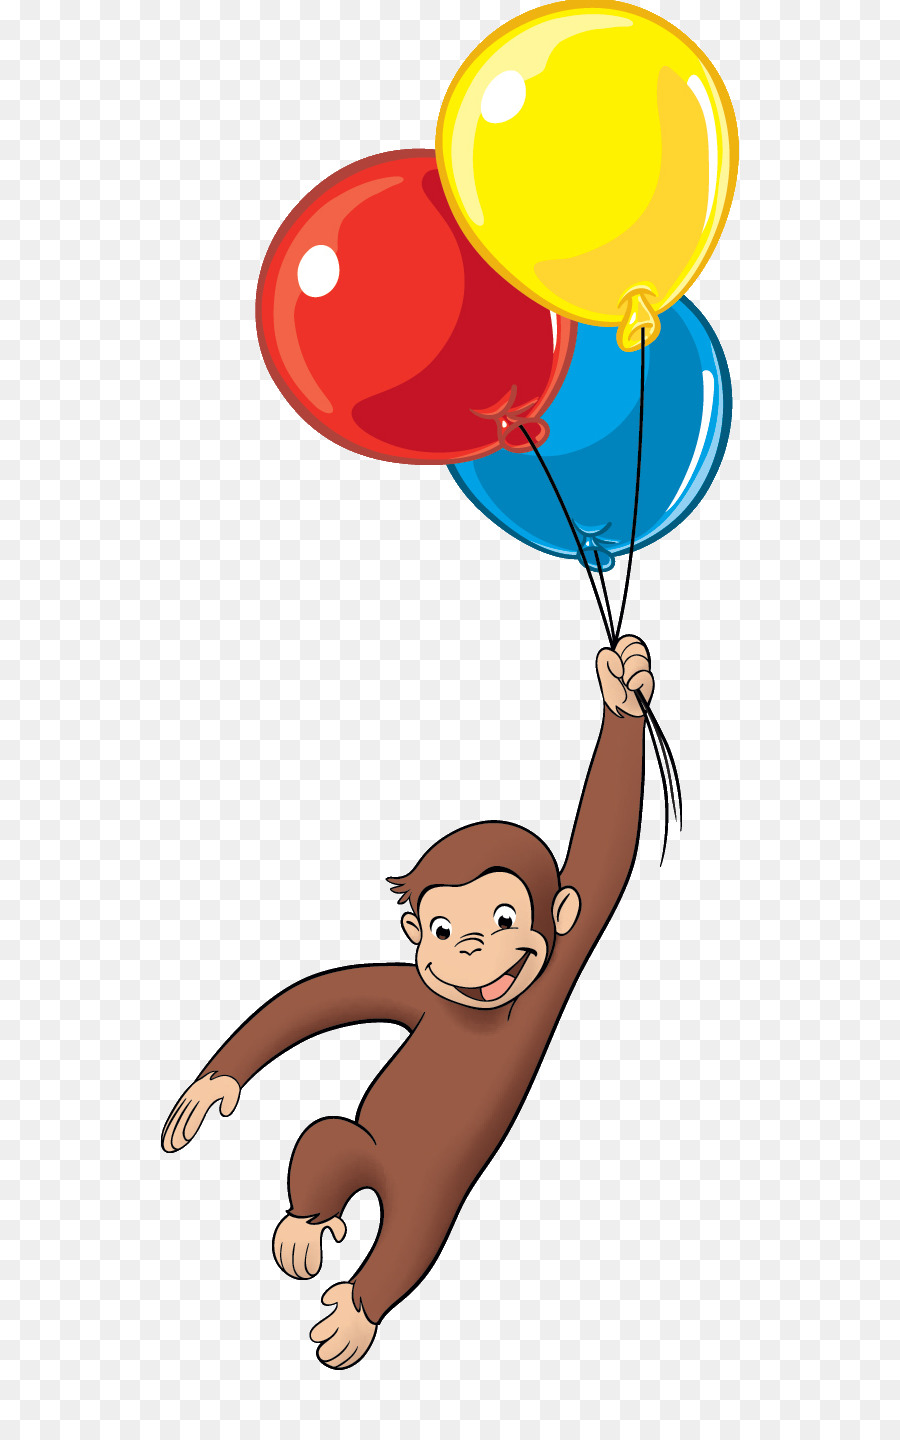 Birthday Party Background Png Download 578 1437 Free Transparent Curious George Png Download Cleanpng Kisspng